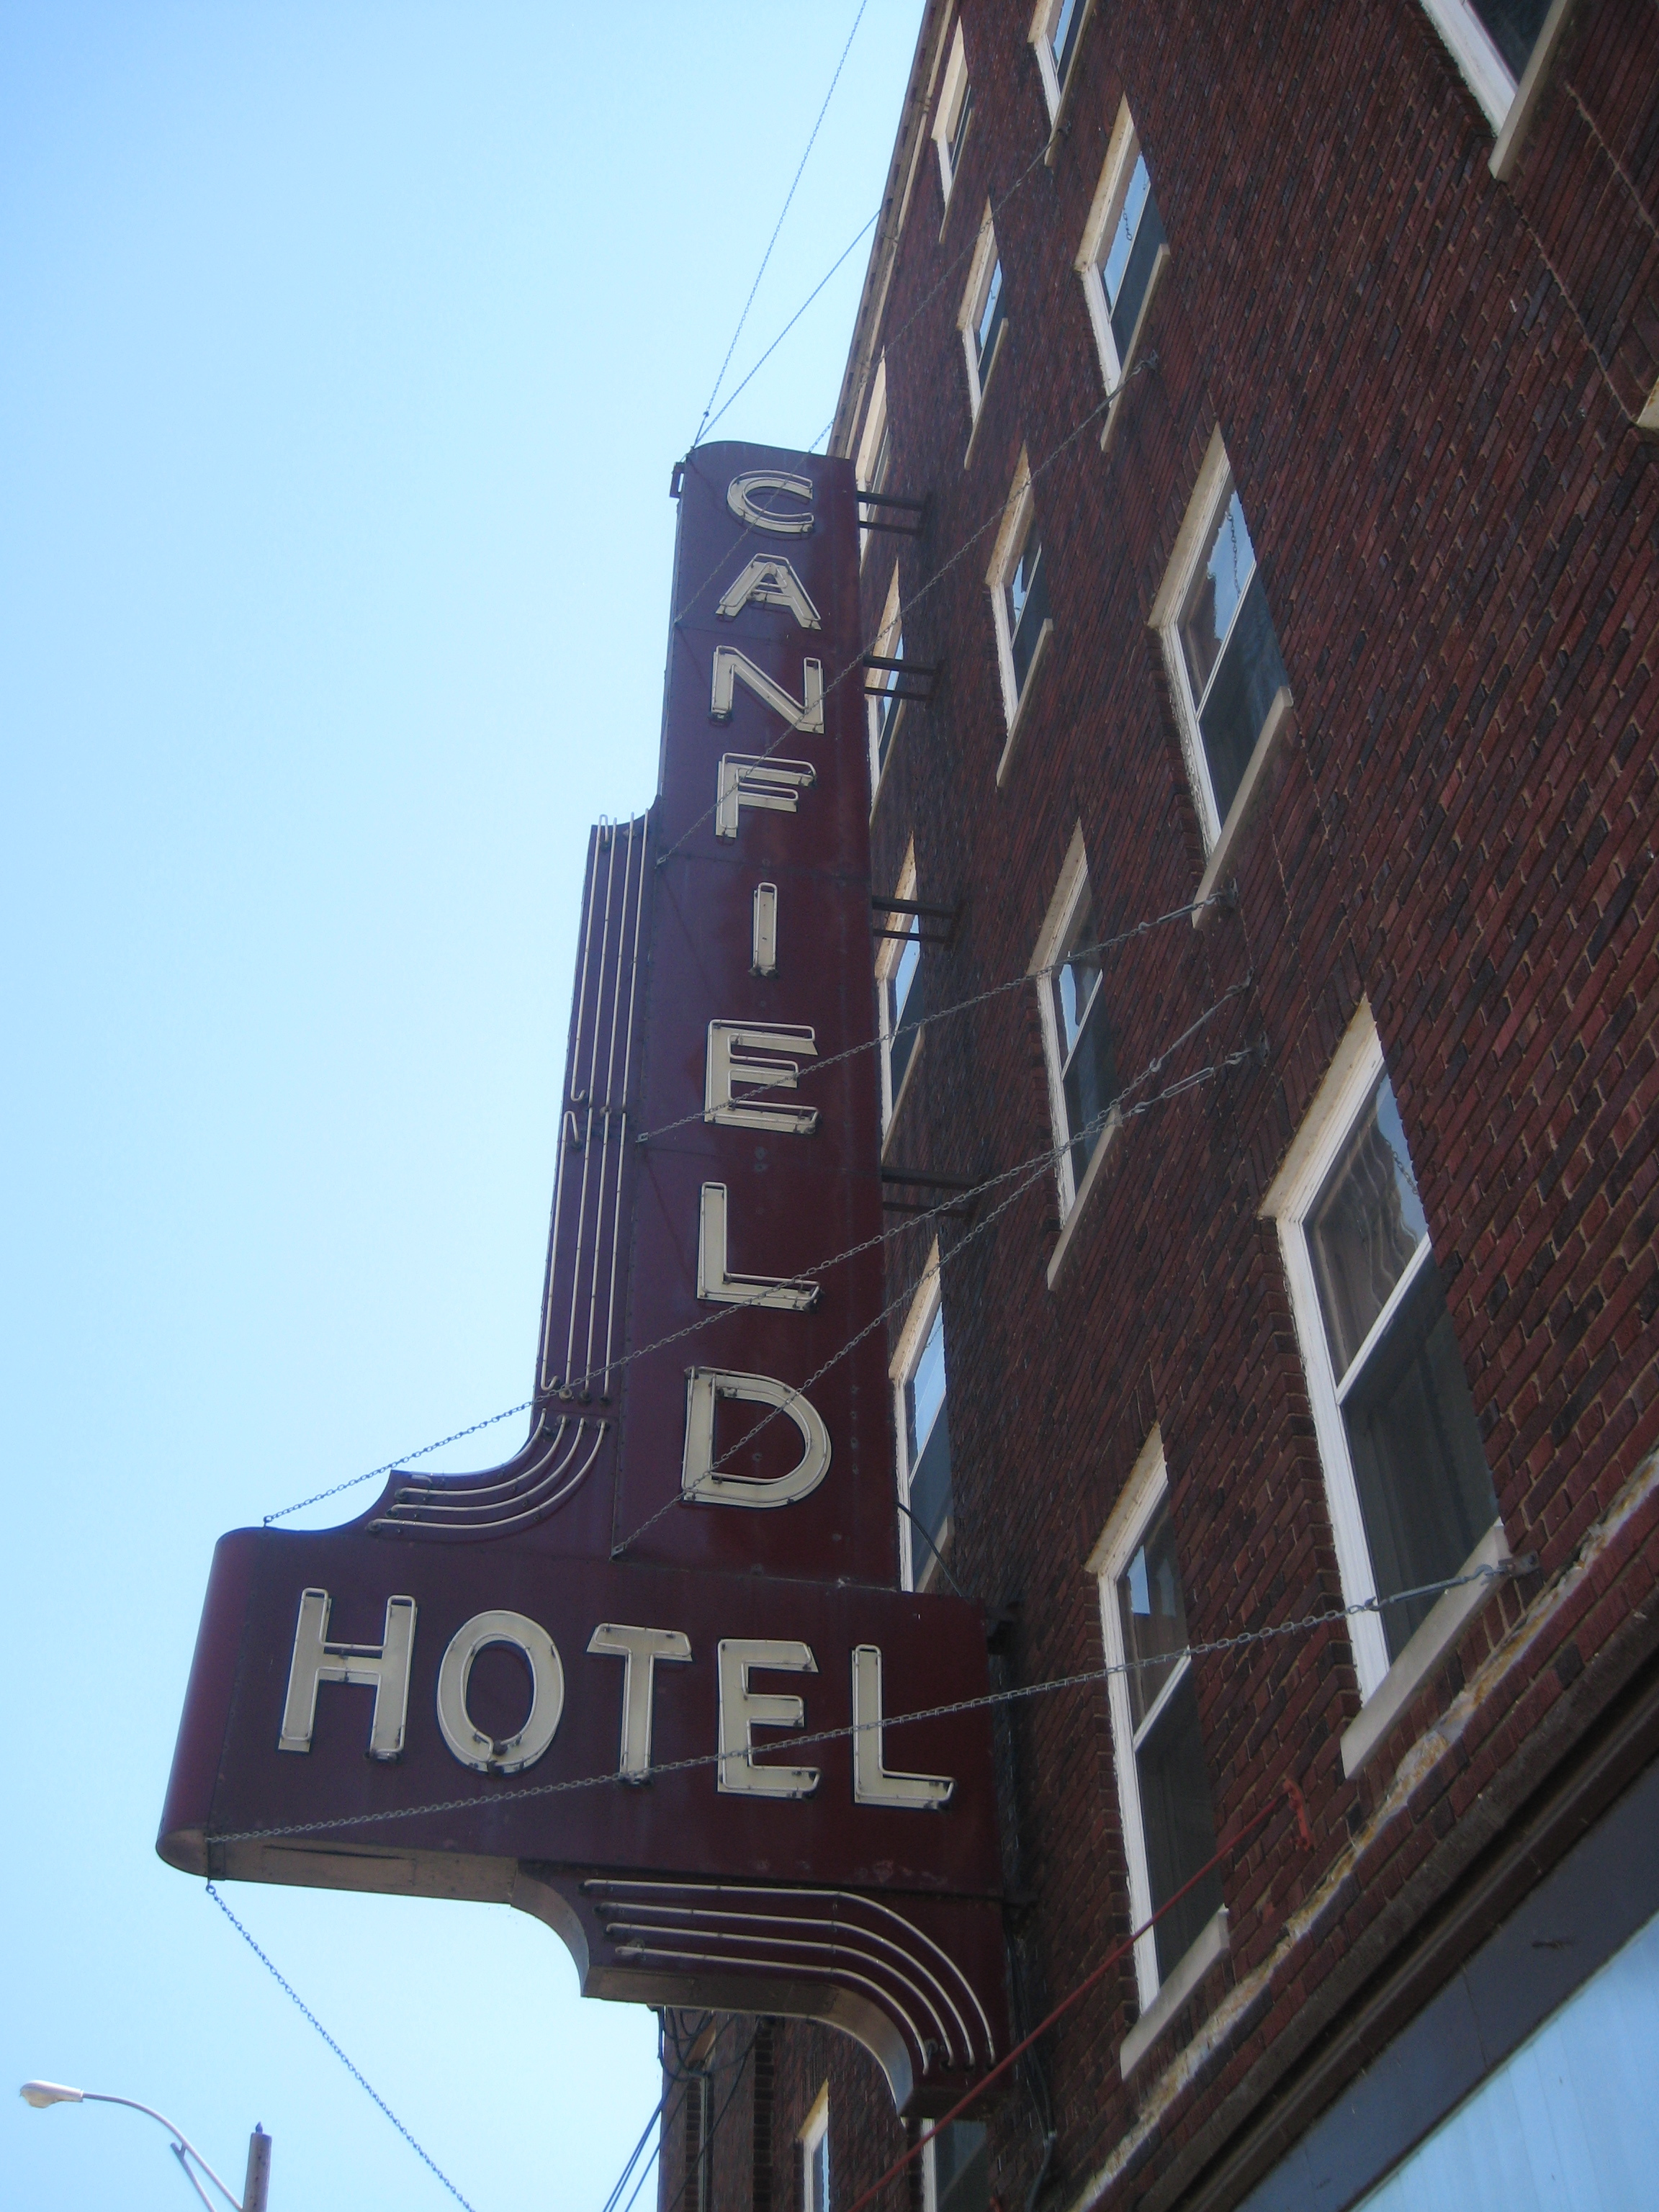 Canfield Hotel